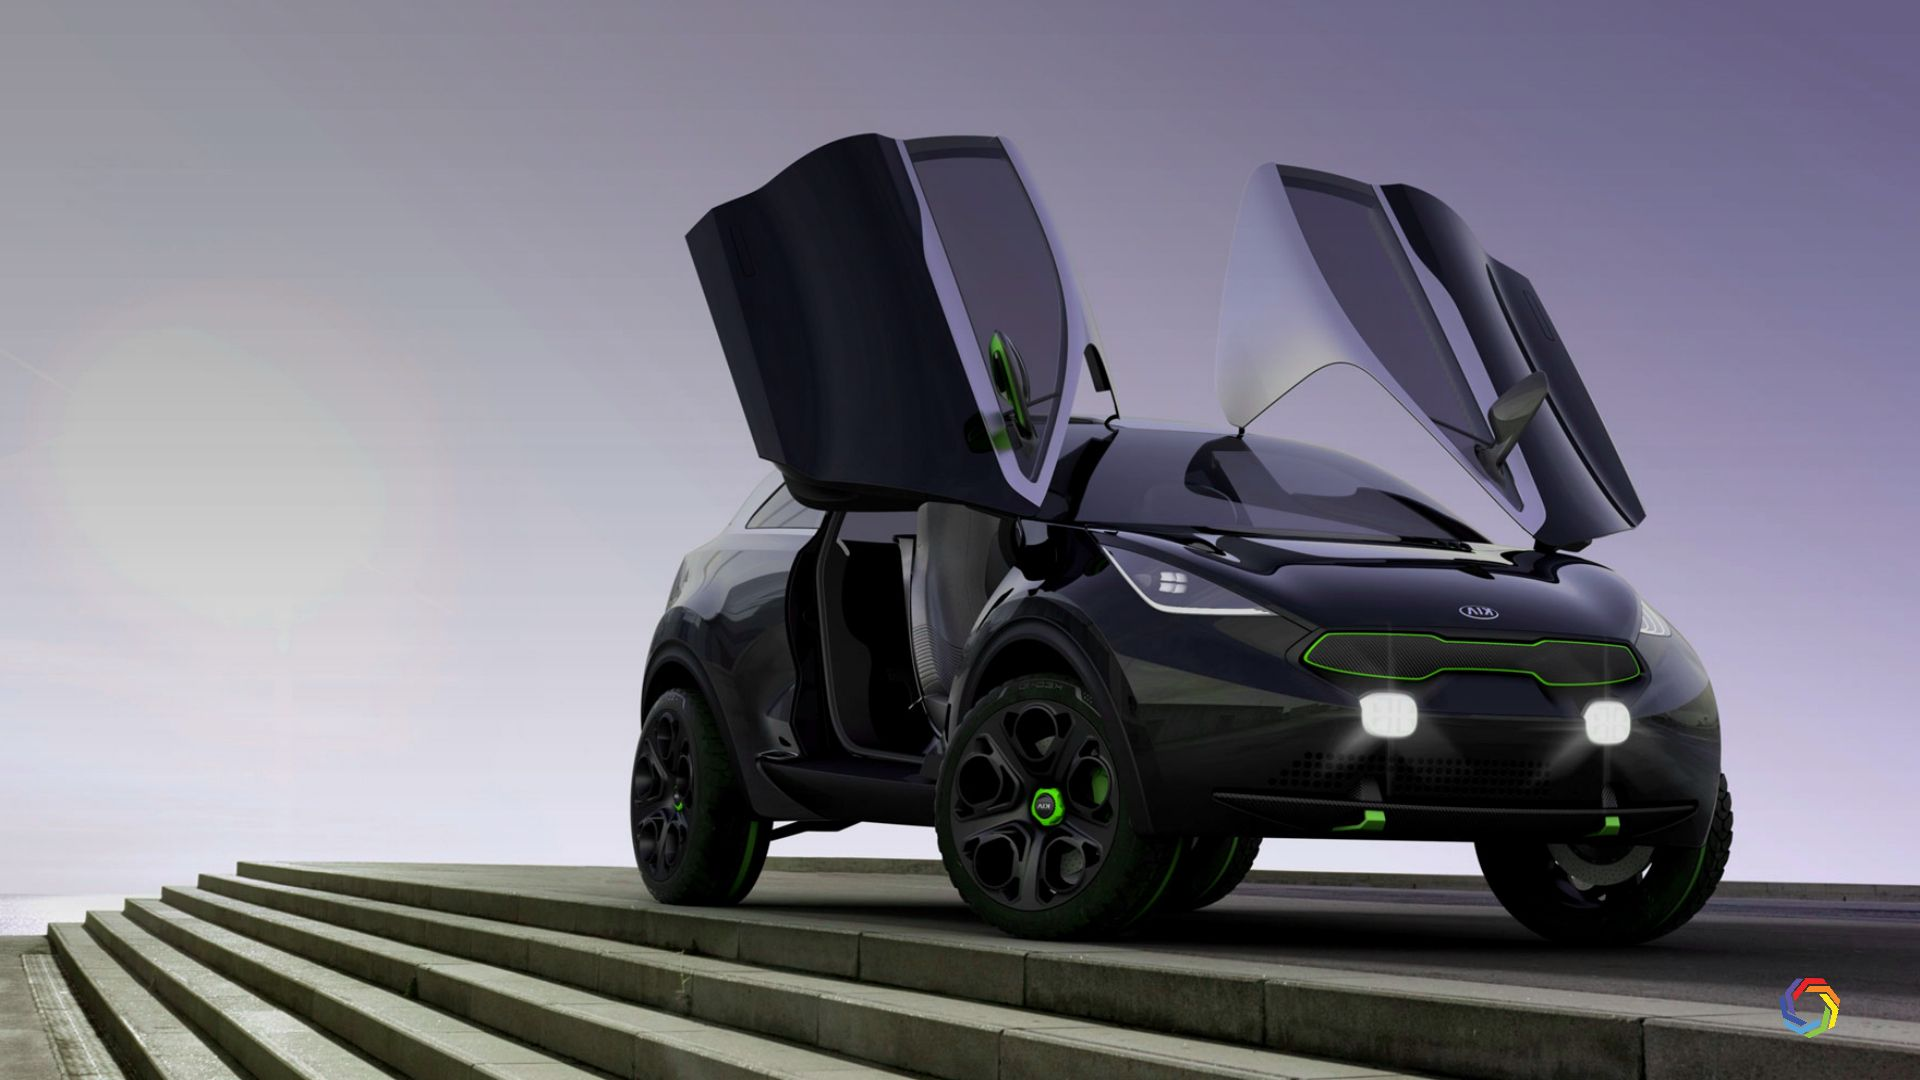 Download Kia Niro Concept Cars Wallpapers Hd Full Hd Widescreen Wallpaper Or High Definition Widescreen Wallpapers Fr Concept Cars Kia Hd Widescreen Wallpapers